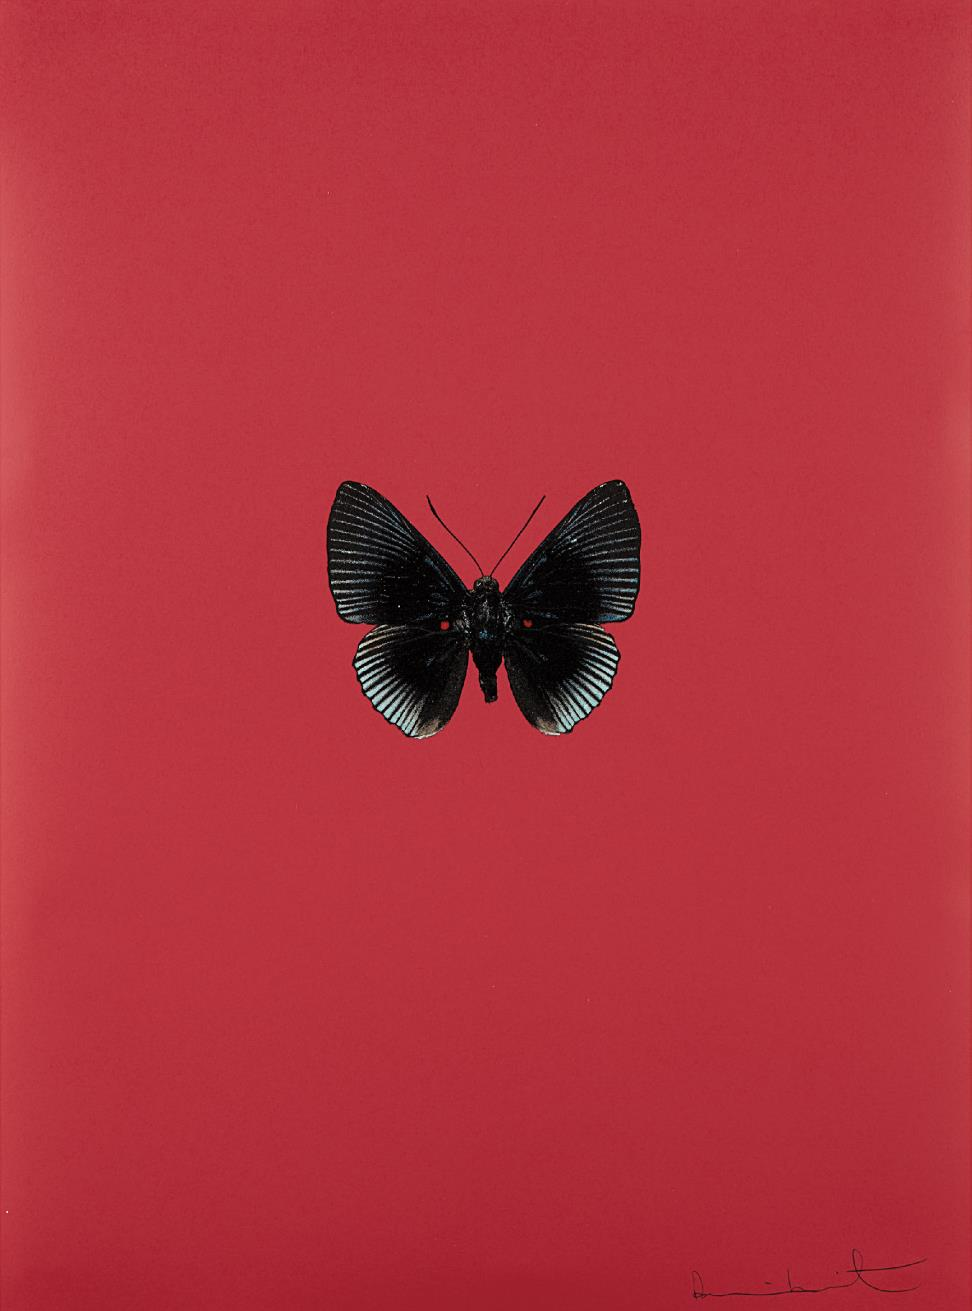 Damien Hirst-Its A Beautiful Day: One Plate-2013